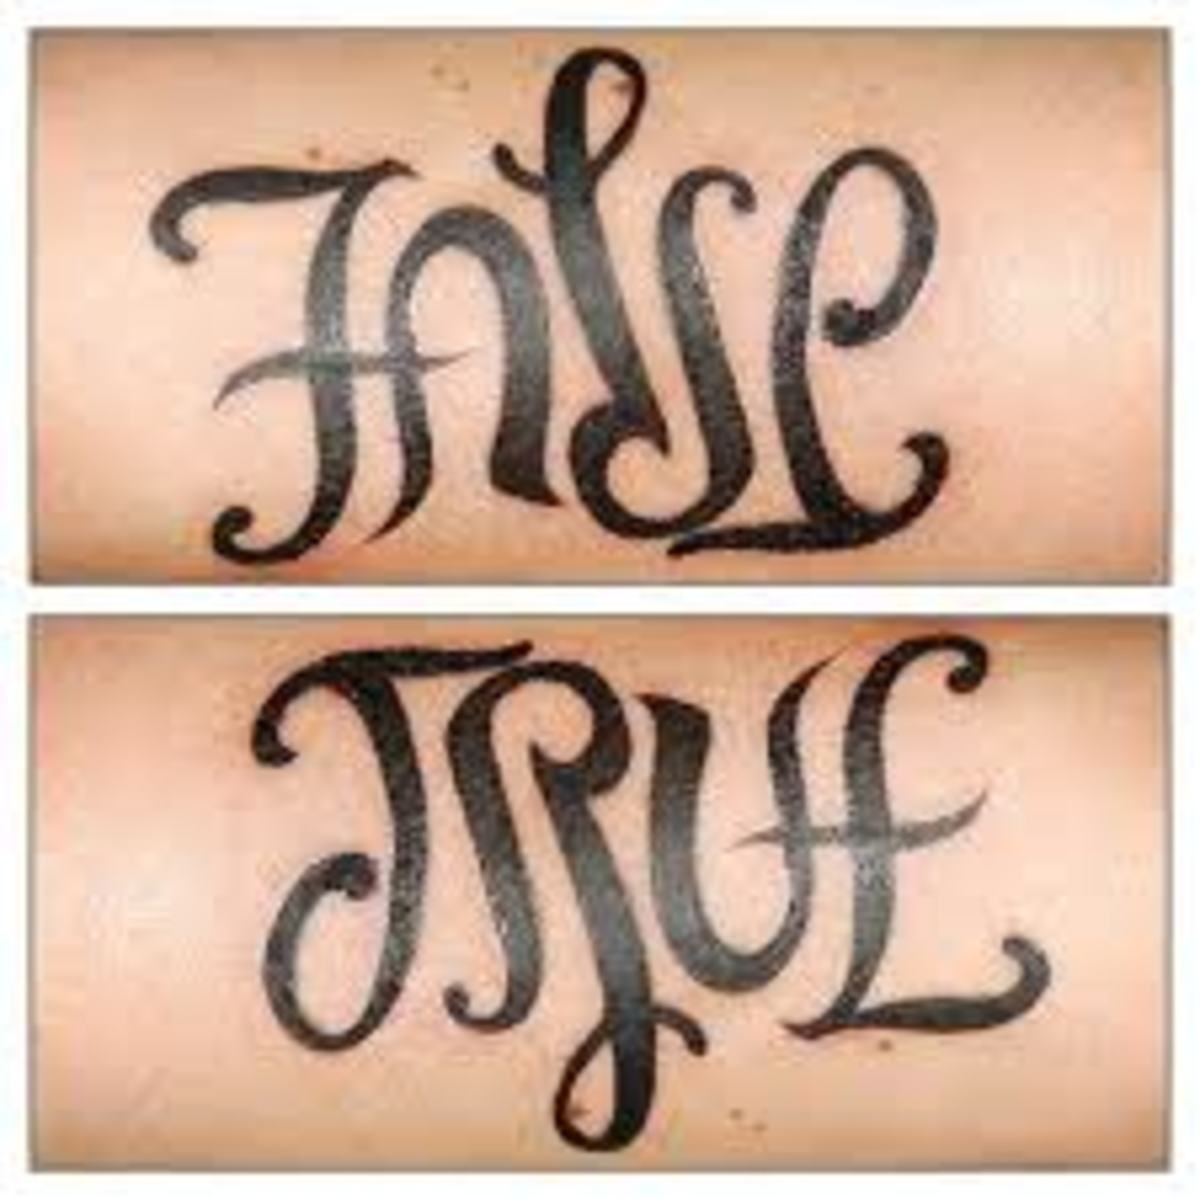 Tattoo ideas ambigram tattoos tatring for Tattoos that say something different upside down